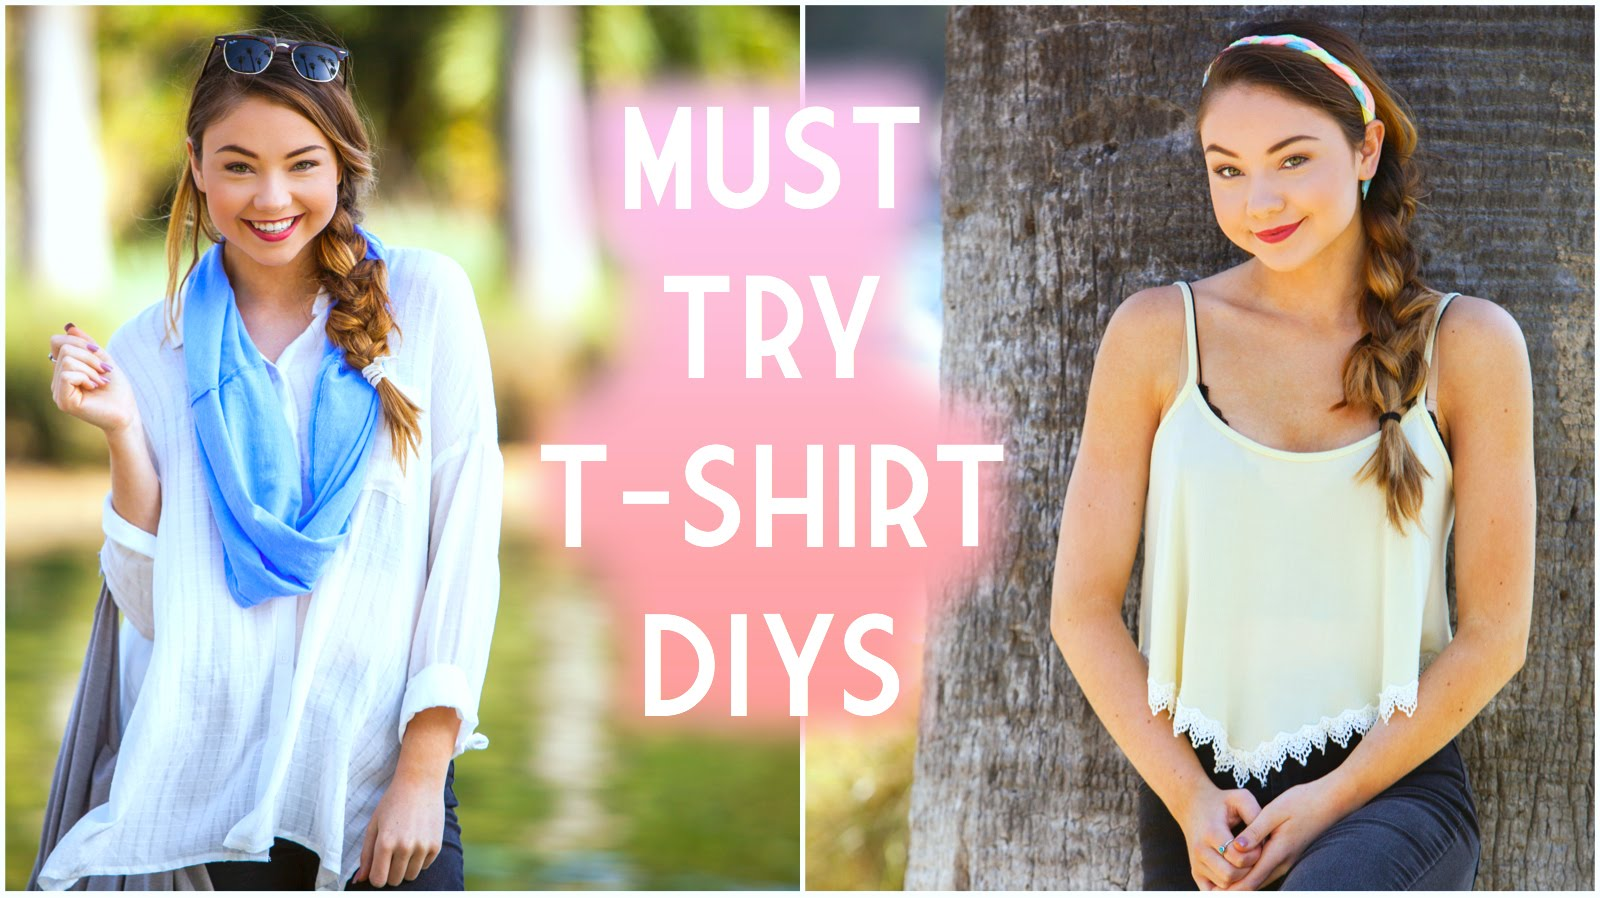 Easy Spring/Summer DIY Ideas: Repurpose Old T-Shirts!   Meredith Foster